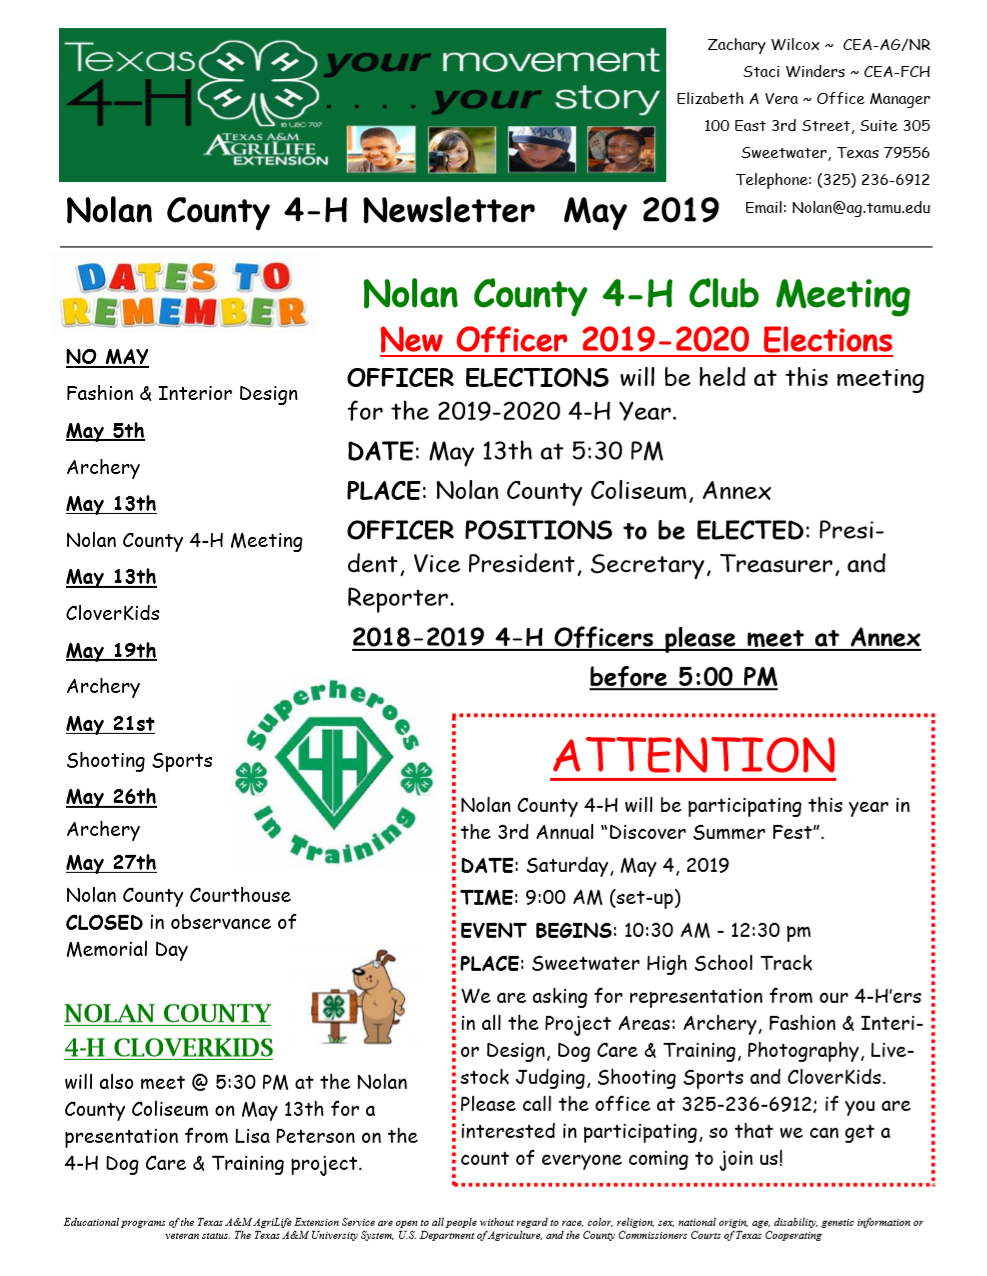 Nolan_County_4-H_Newsletter_May_2019_p1.png